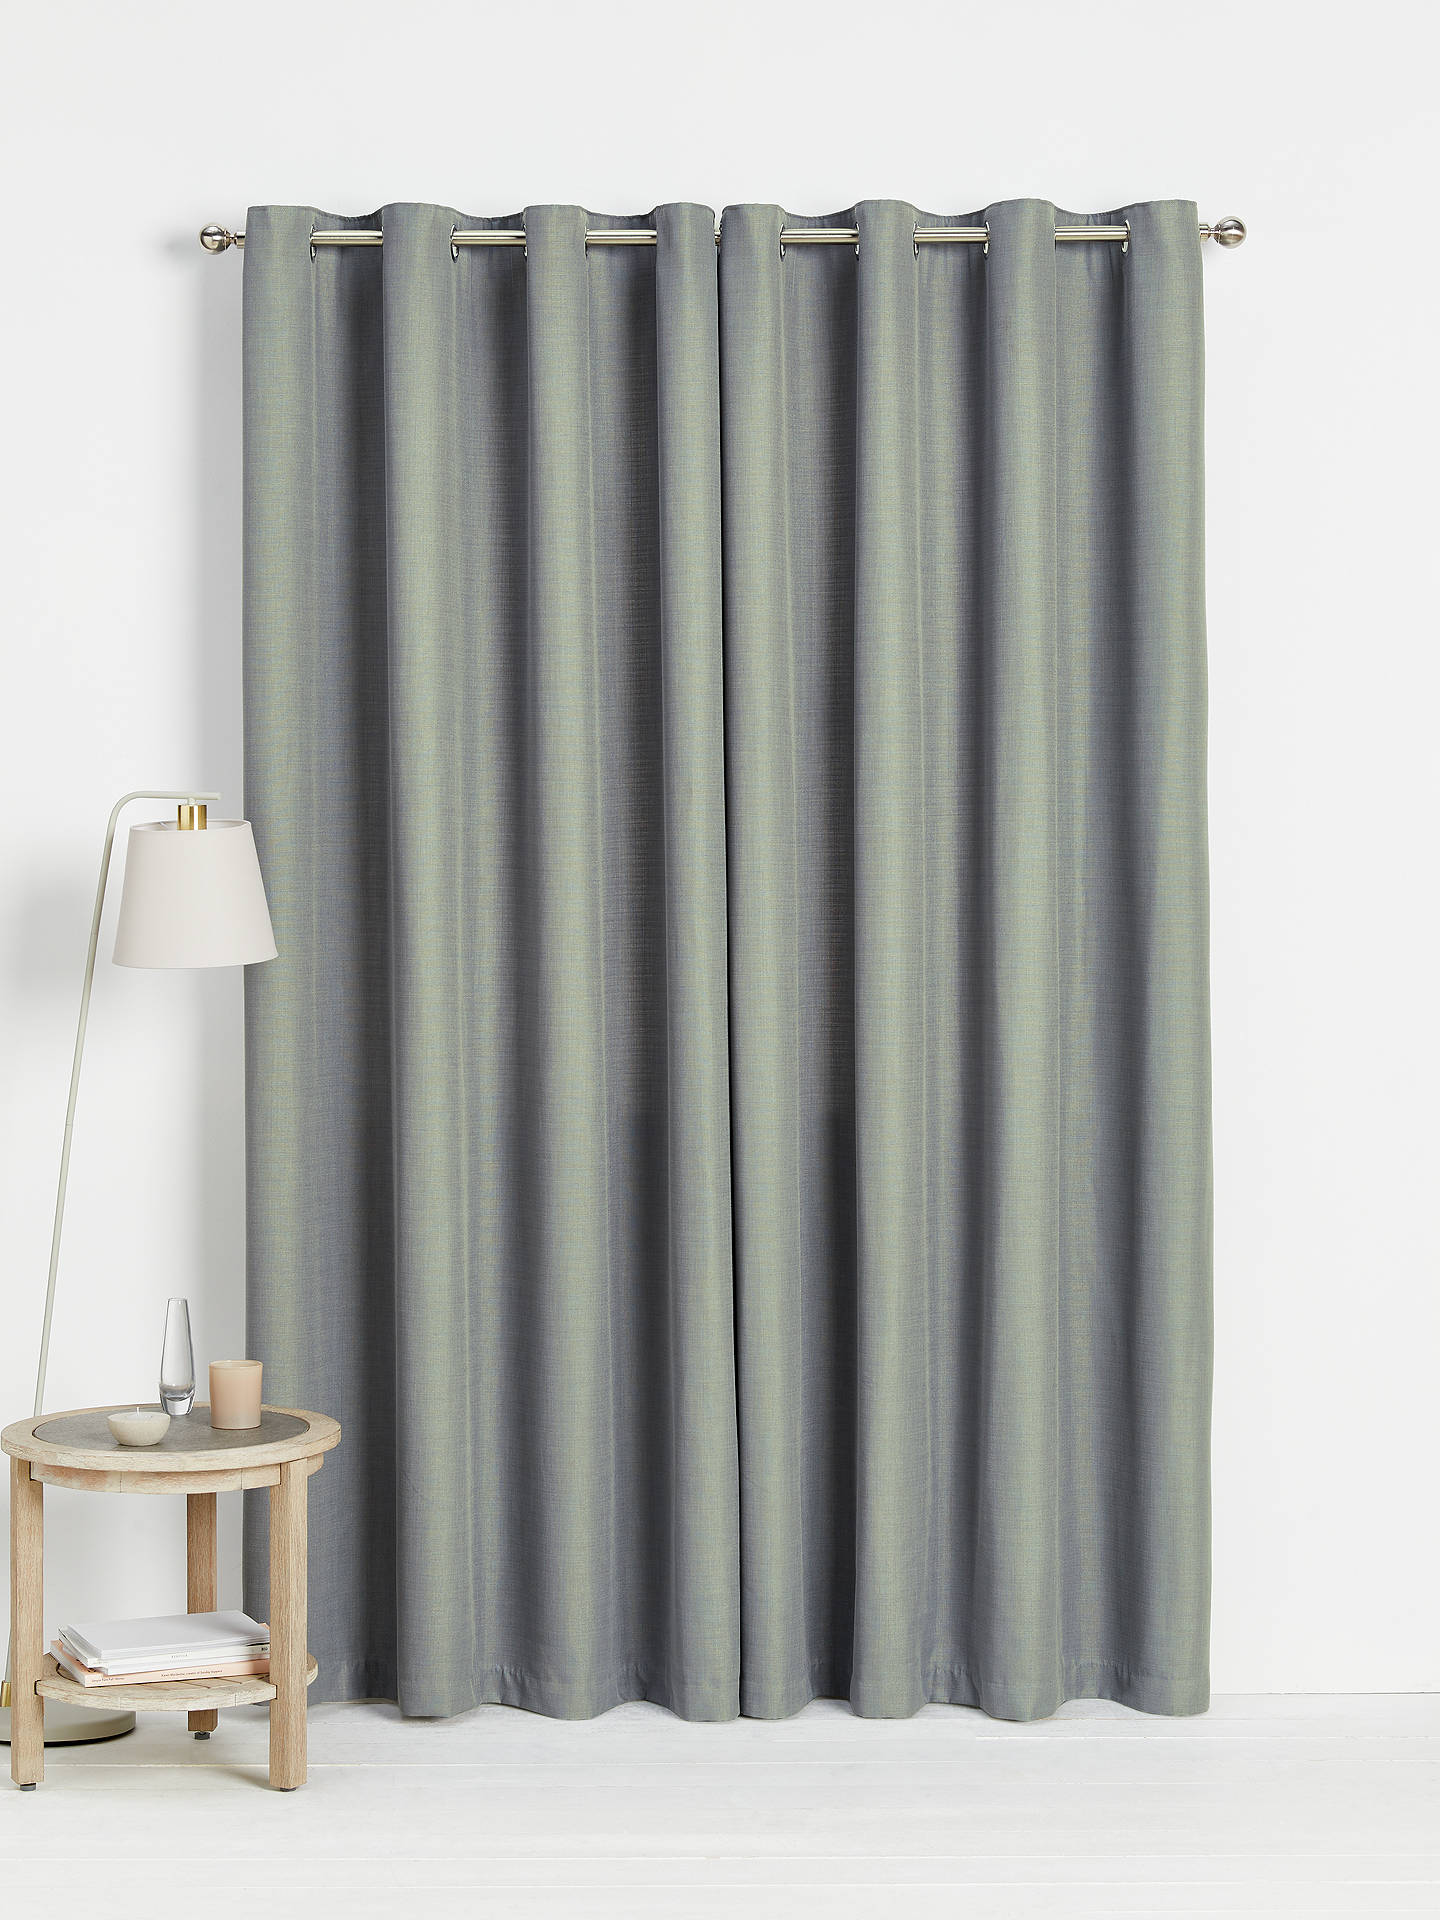 Buy John Lewis & Partners Barathea Pair Lined Eyelet Curtains, Mid Grey, W117 x Drop 228cm Online at johnlewis.com